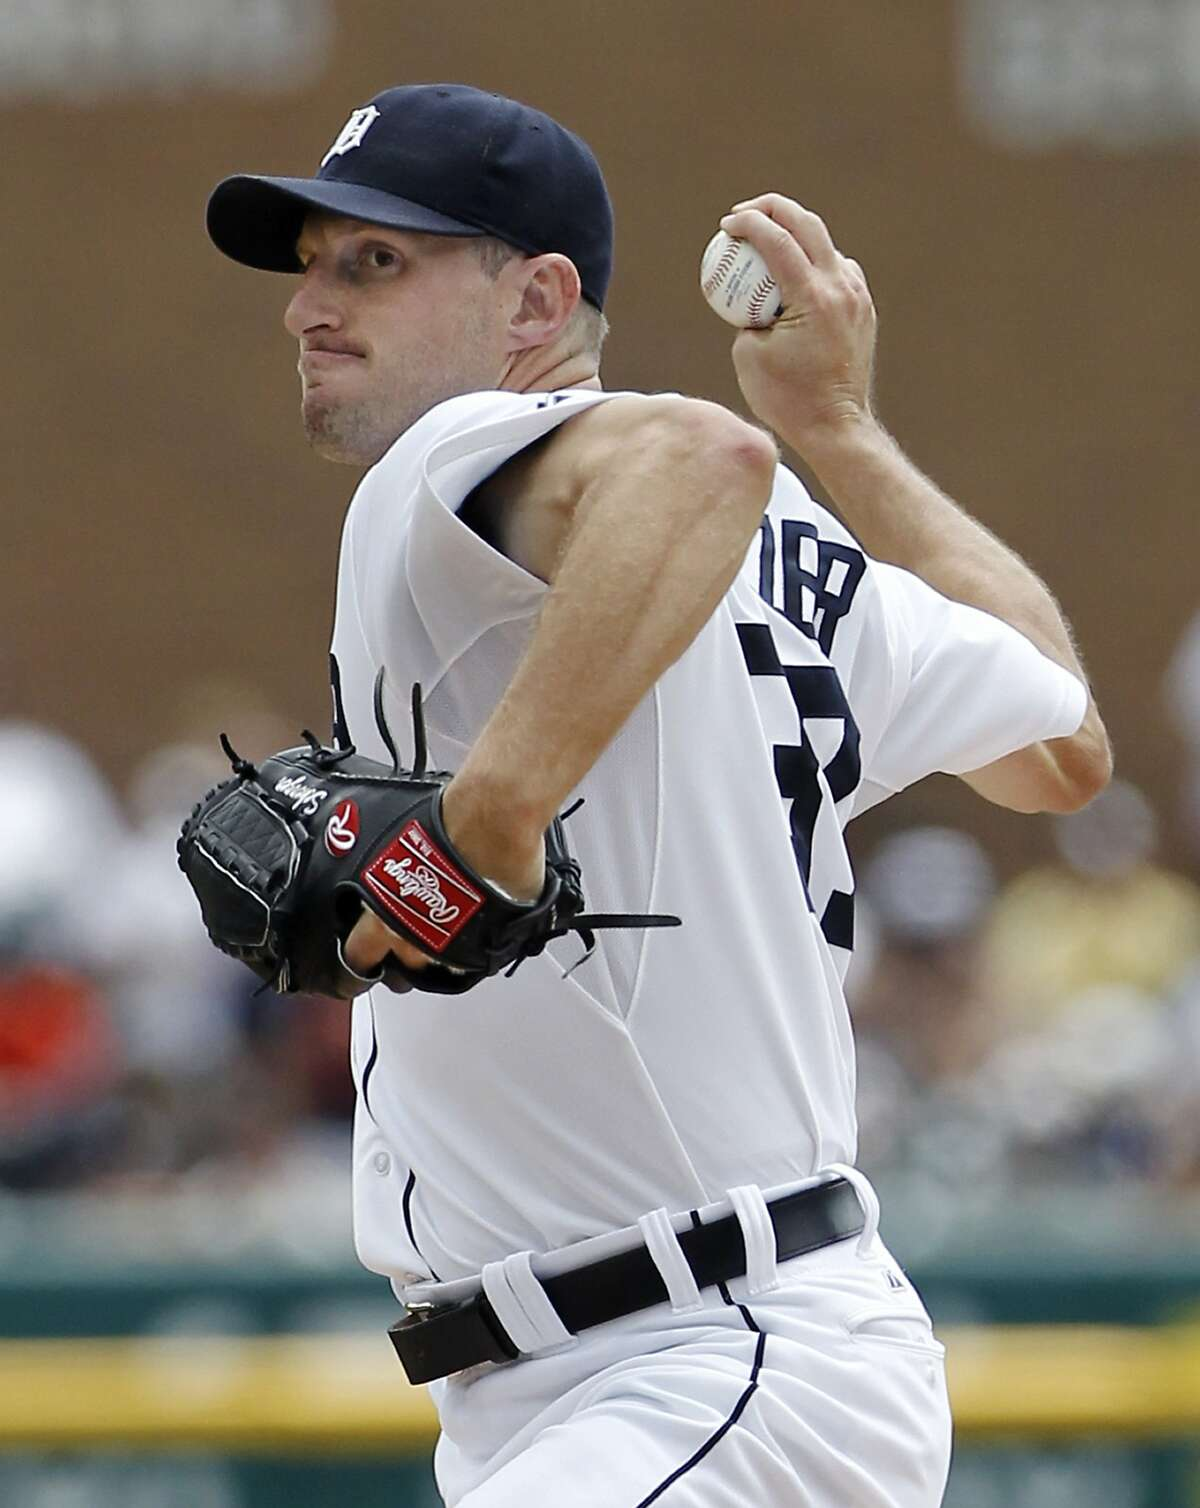 Pitcher Max Scherzer is being persued by the Giants.